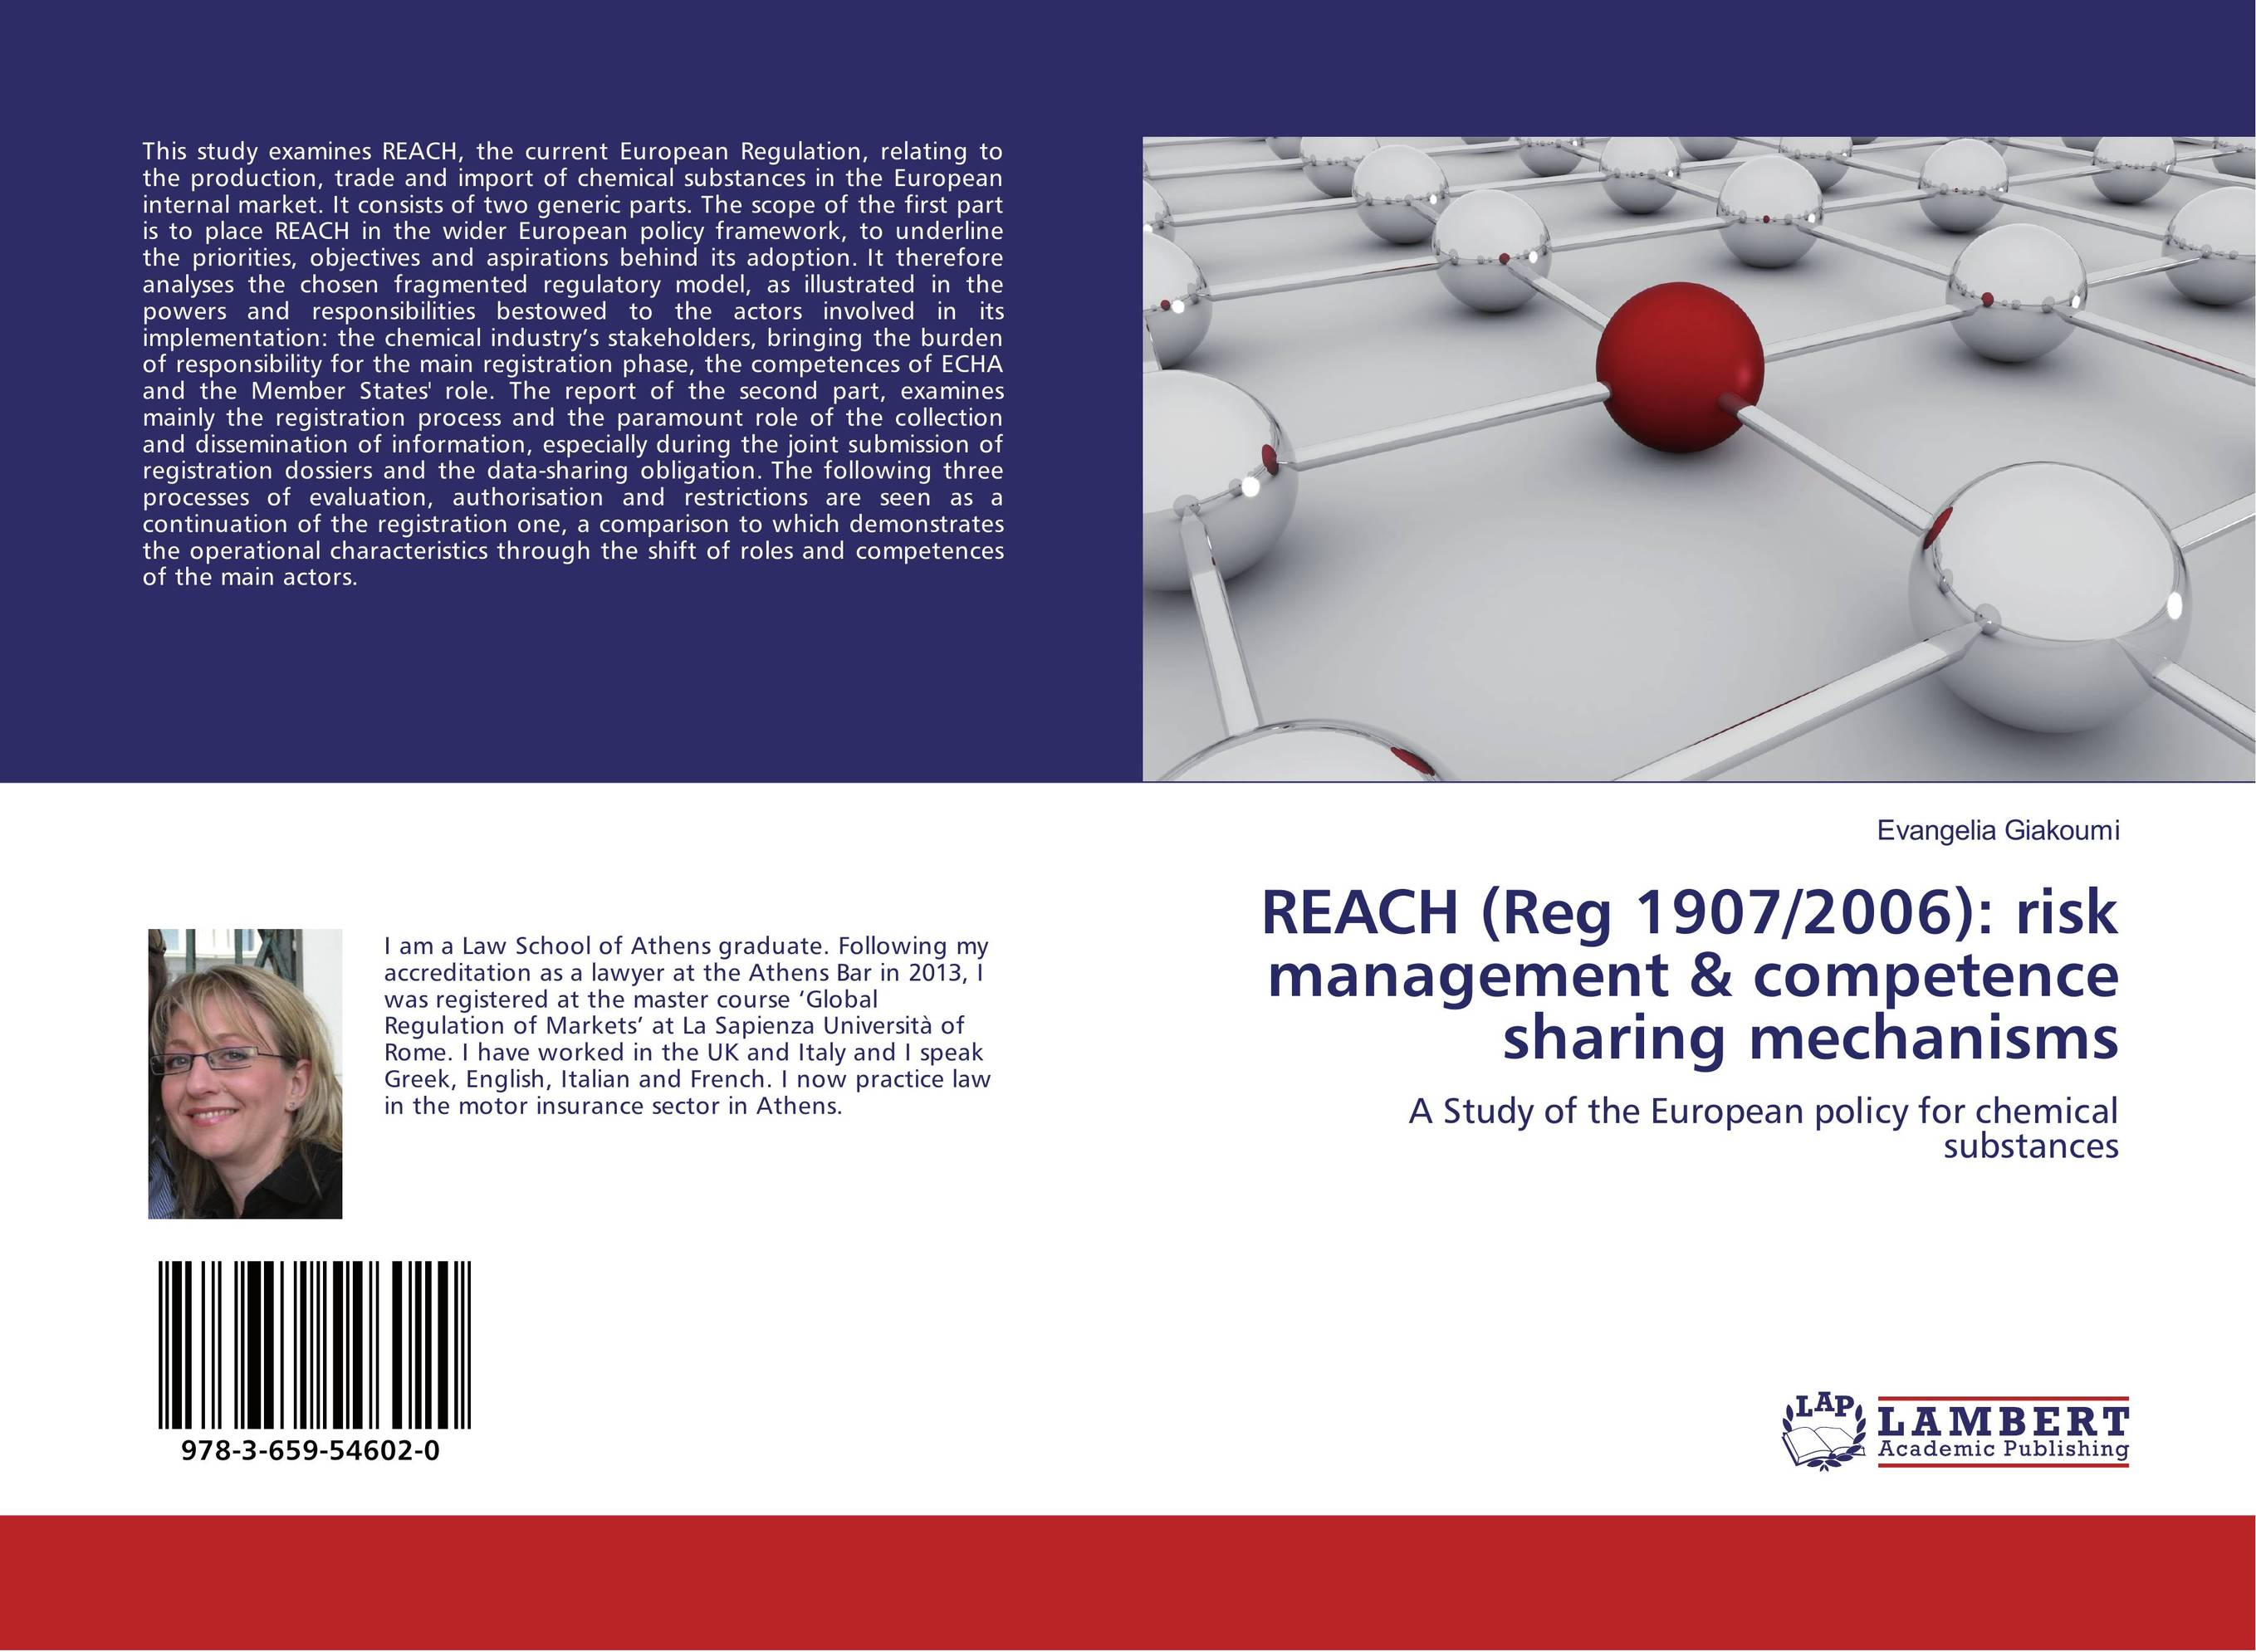 REACH (Reg 1907/2006): risk management & competence sharing mechanisms